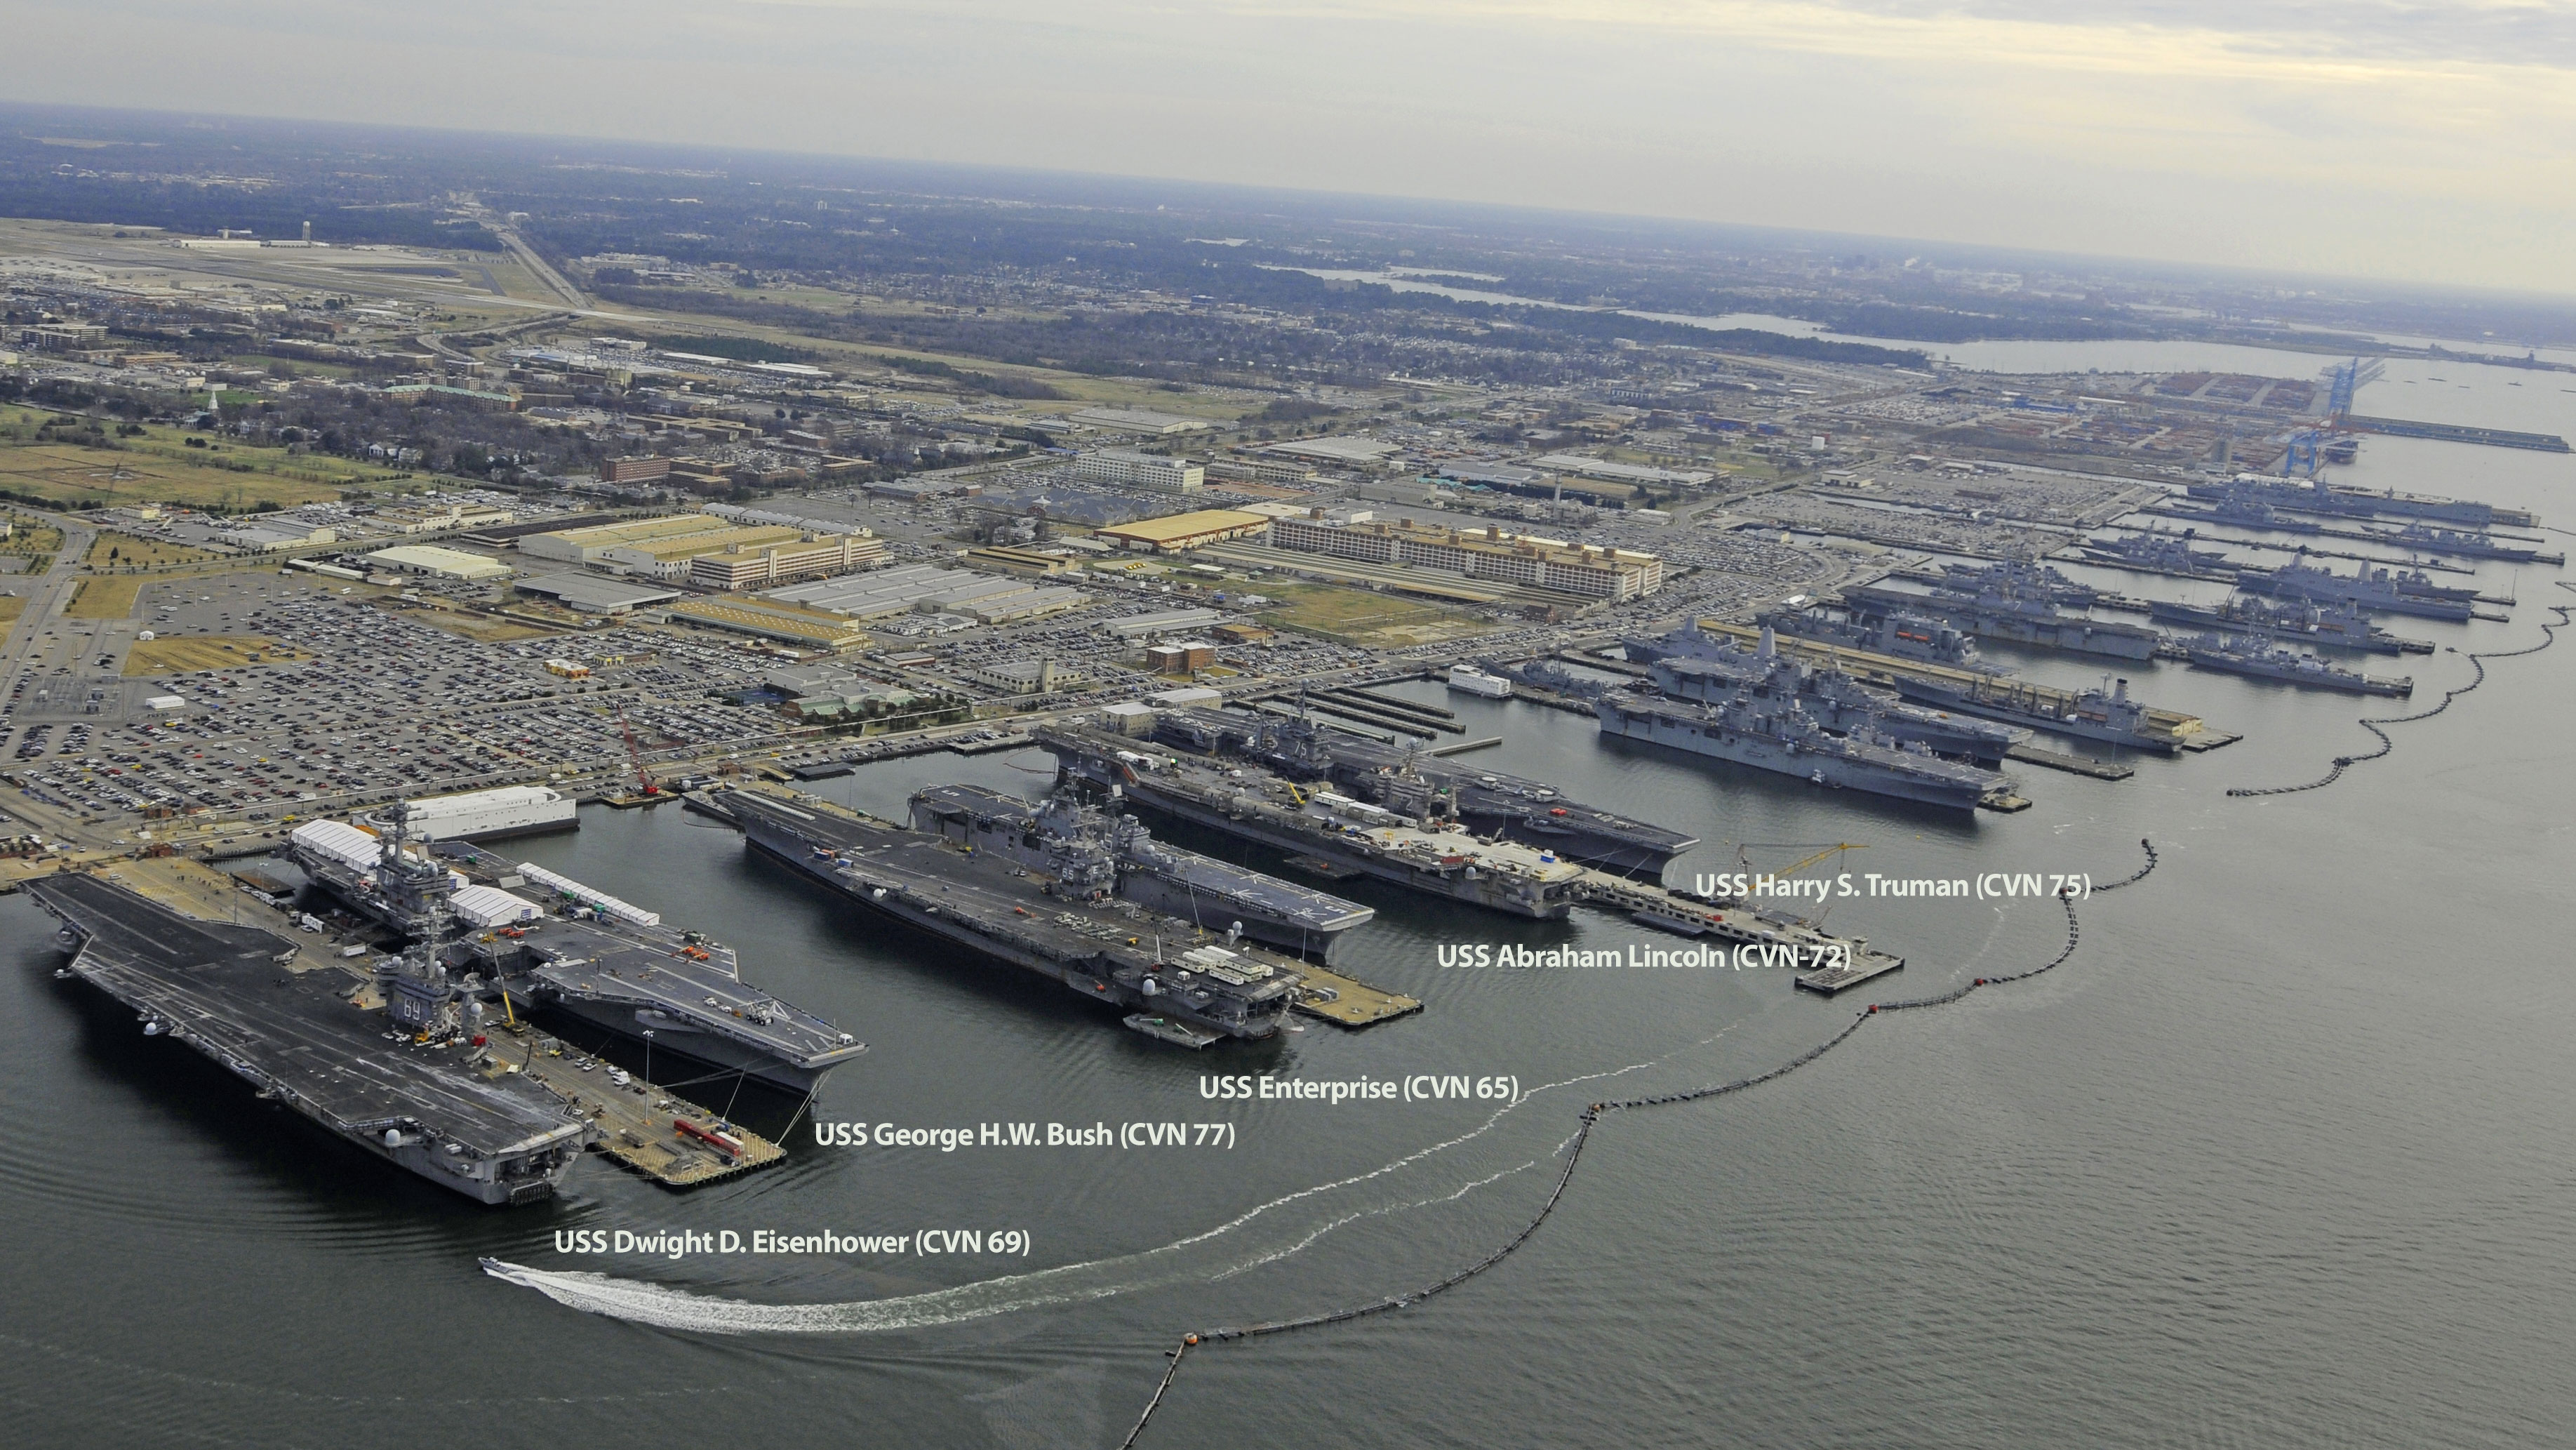 Why the us navy is the most formidable naval force in the world